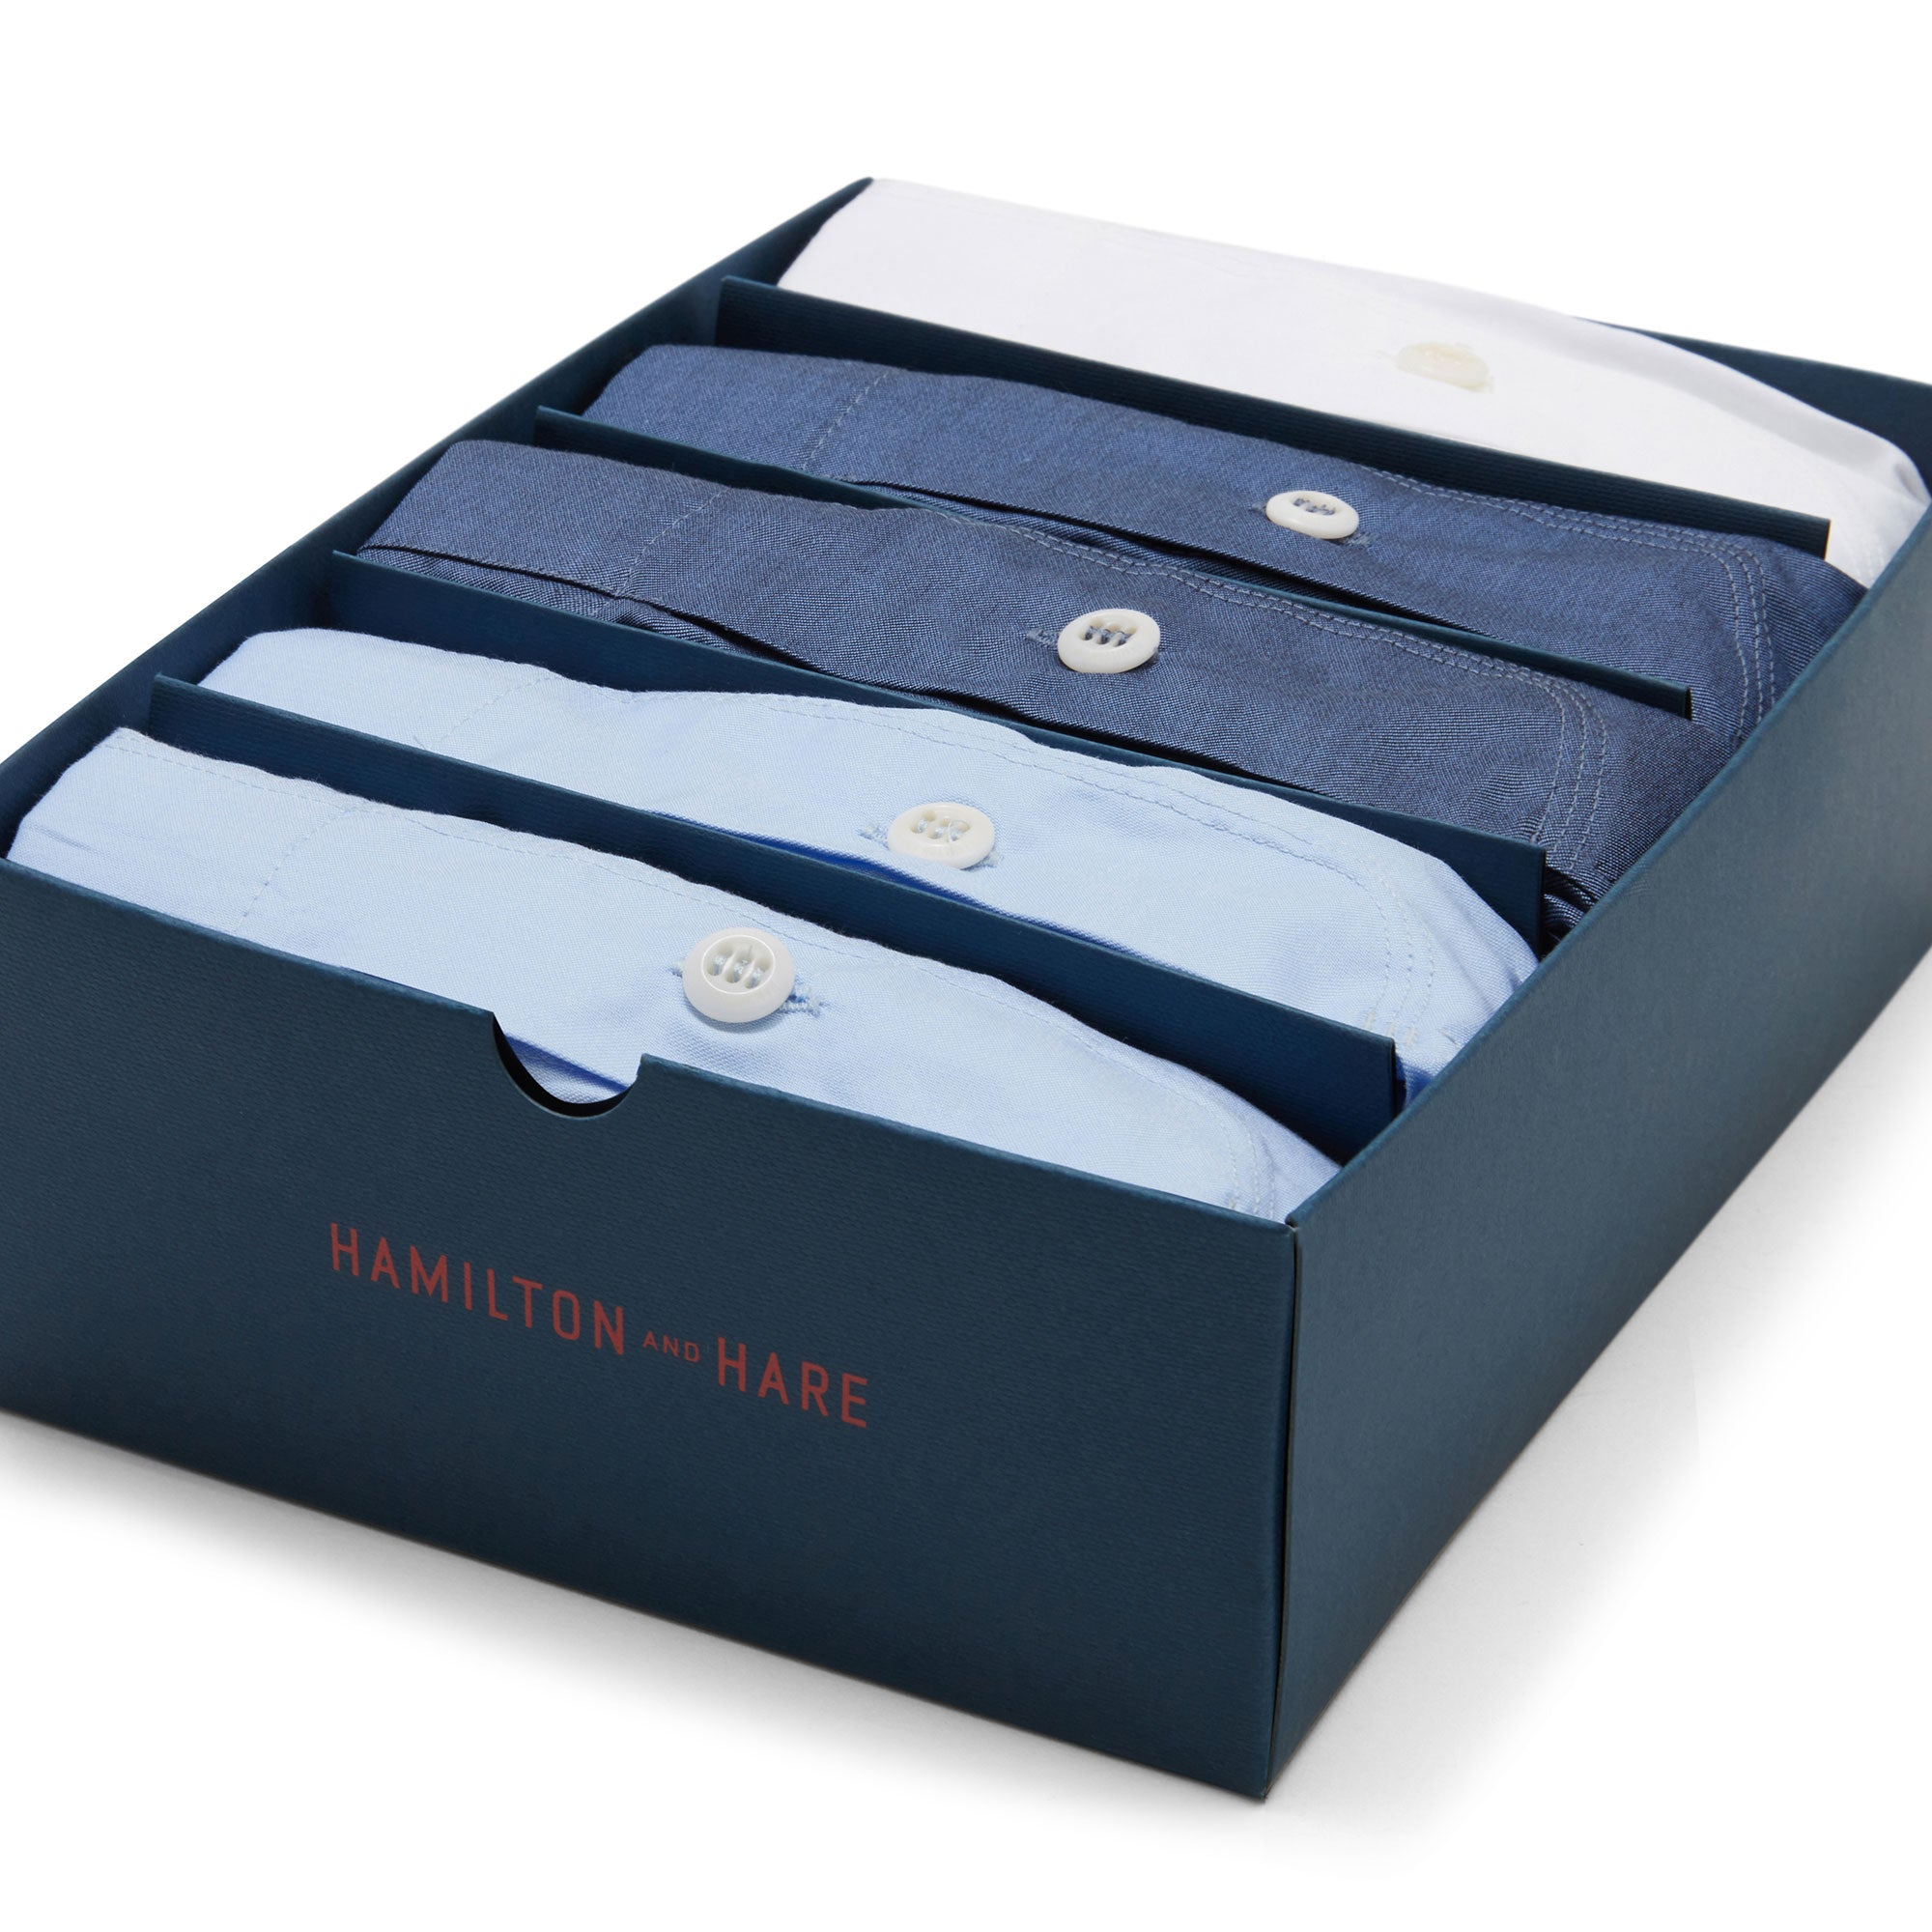 Plain Boxer Short Box Set - Sky Blue, White, Navy - Hamilton and Hare Ltd